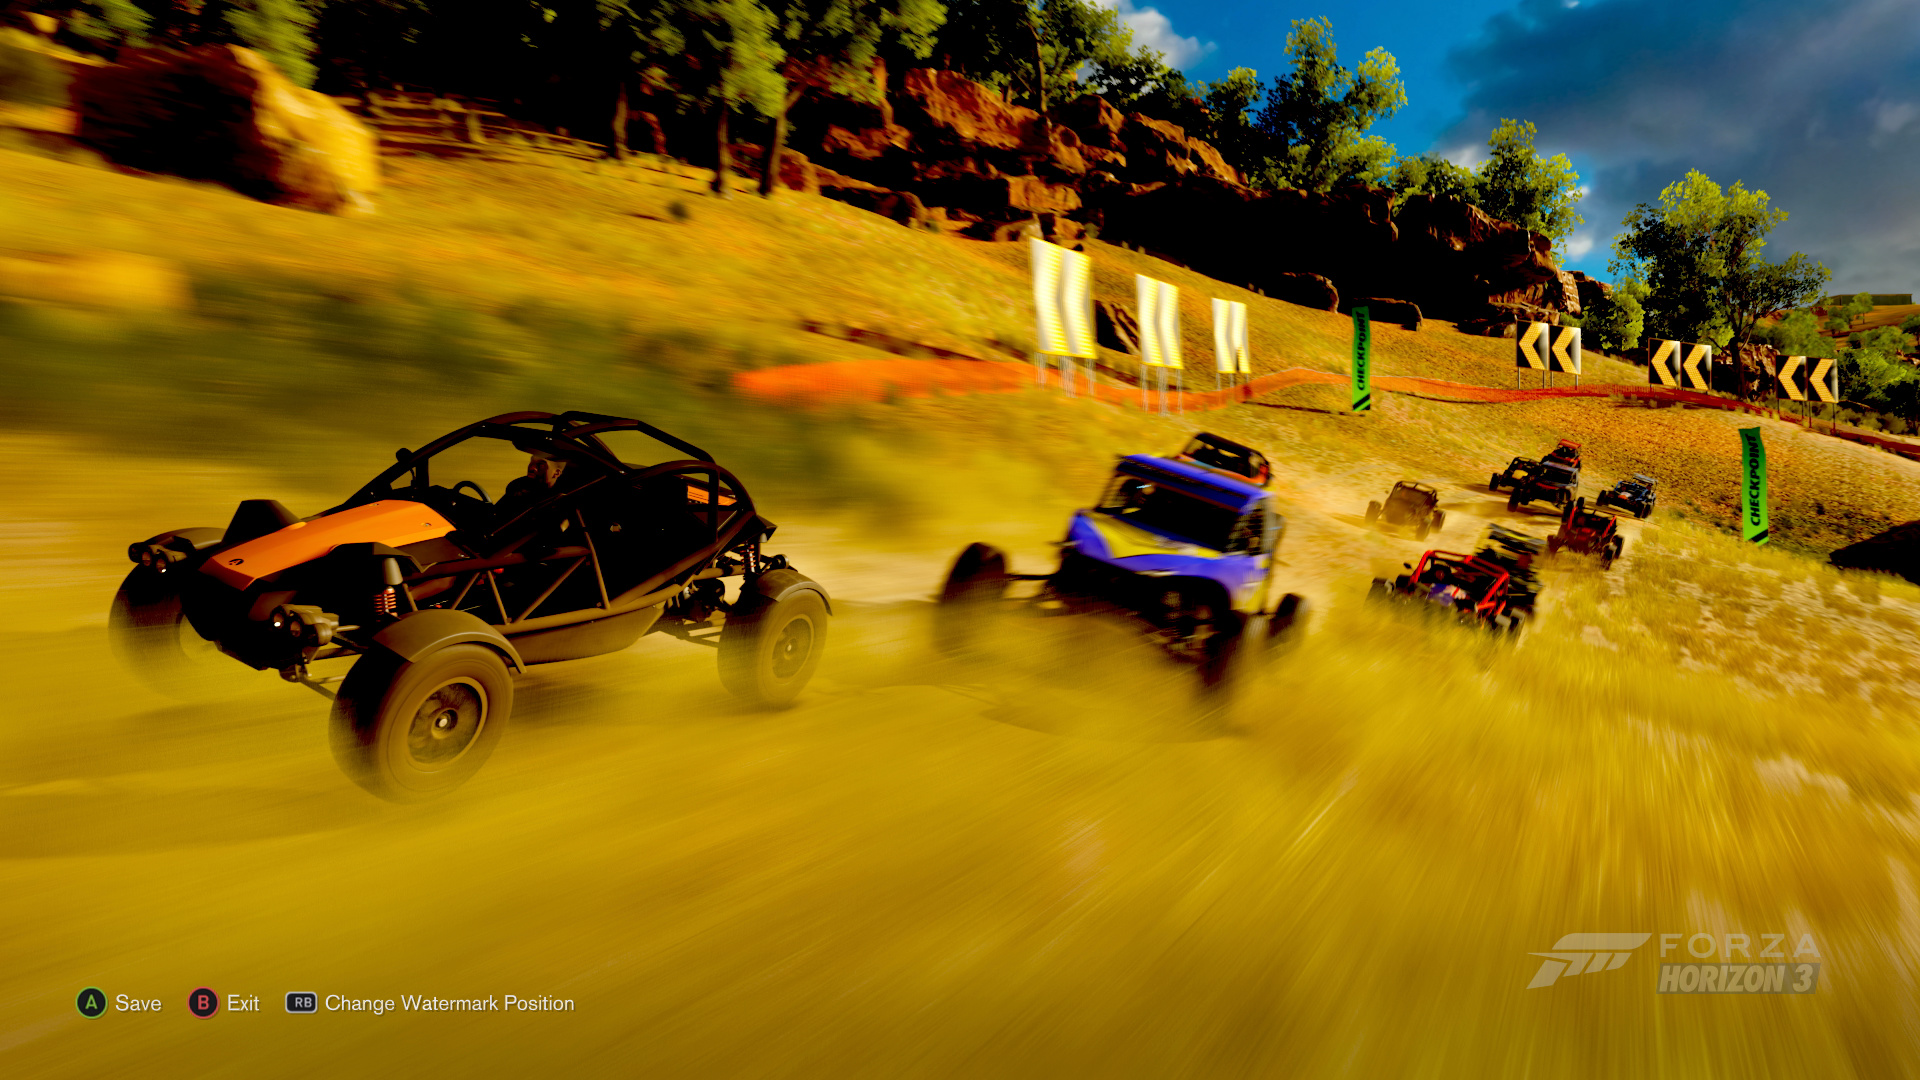 Forza Horizon 3 Xbox One Review: Expanded and Improved | USgamer